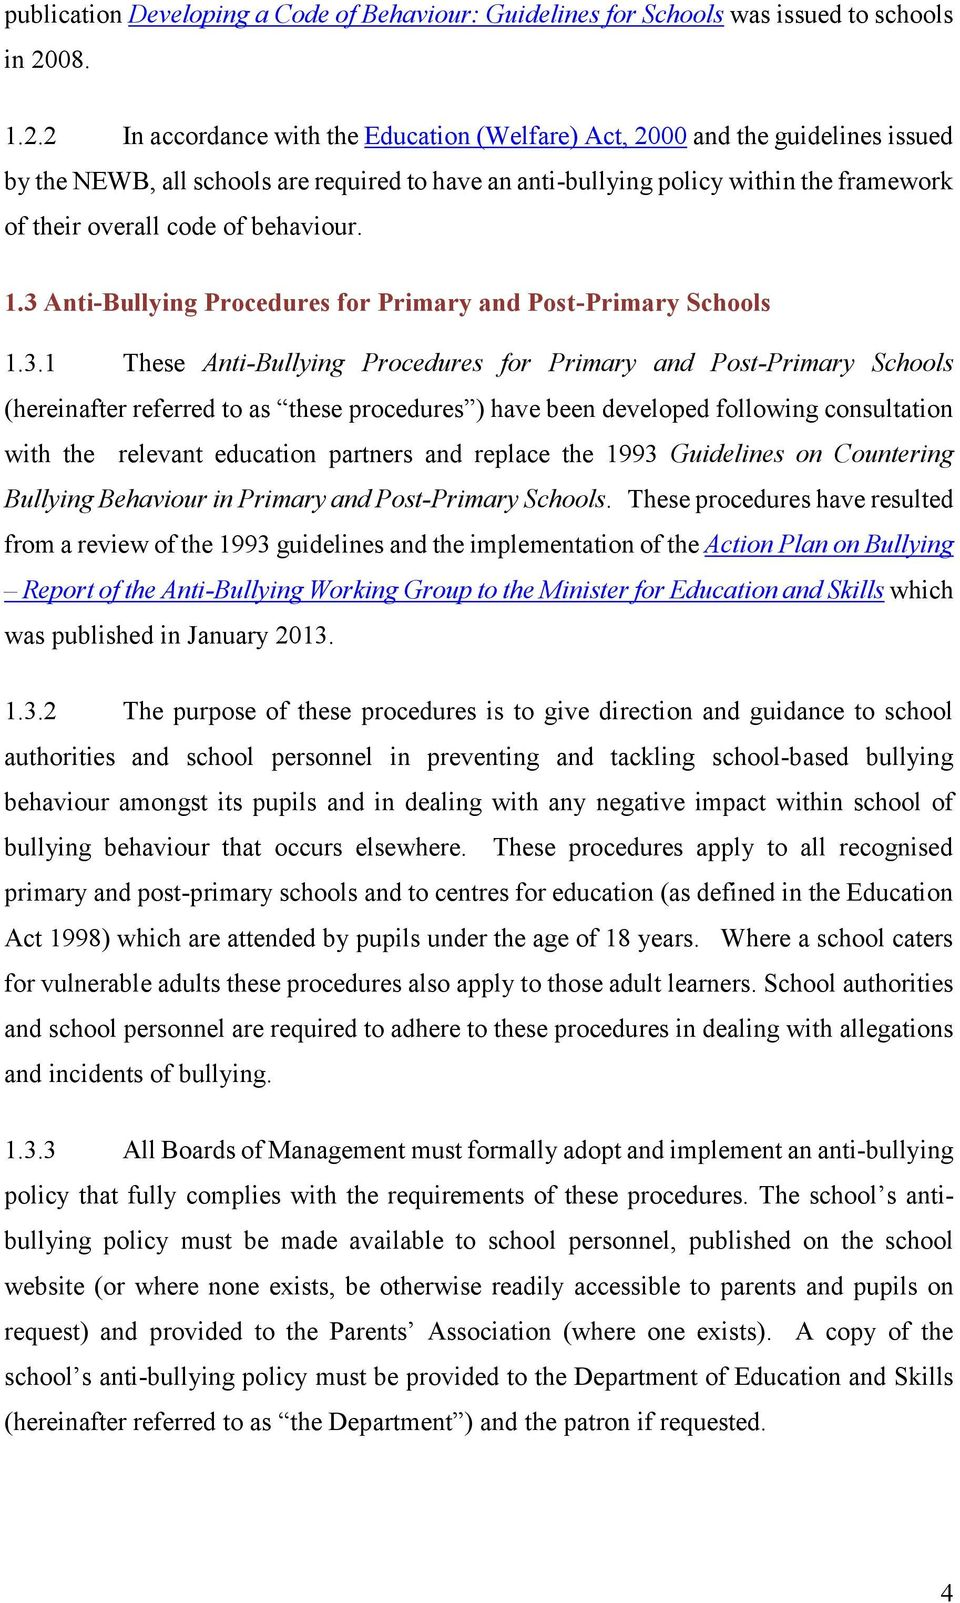 2 In accordance with the Education (Welfare) Act, 2000 and the guidelines issued by the NEWB, all schools are required to have an anti-bullying policy within the framework of their overall code of